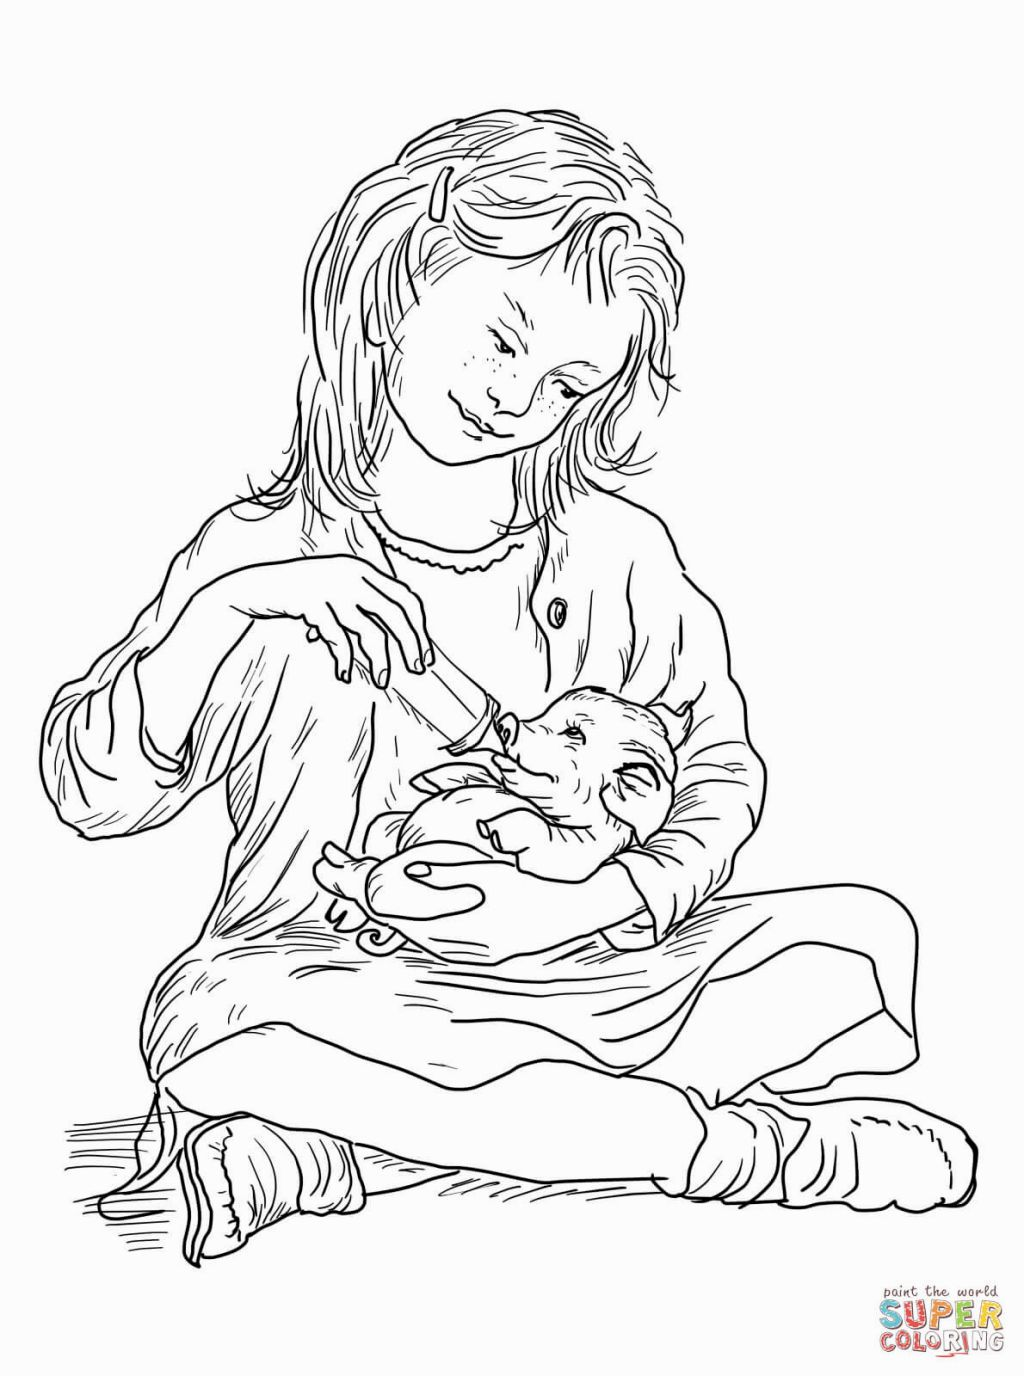 Charlottes Web Coloring Pages | Education | Pinterest | Charlottes ...